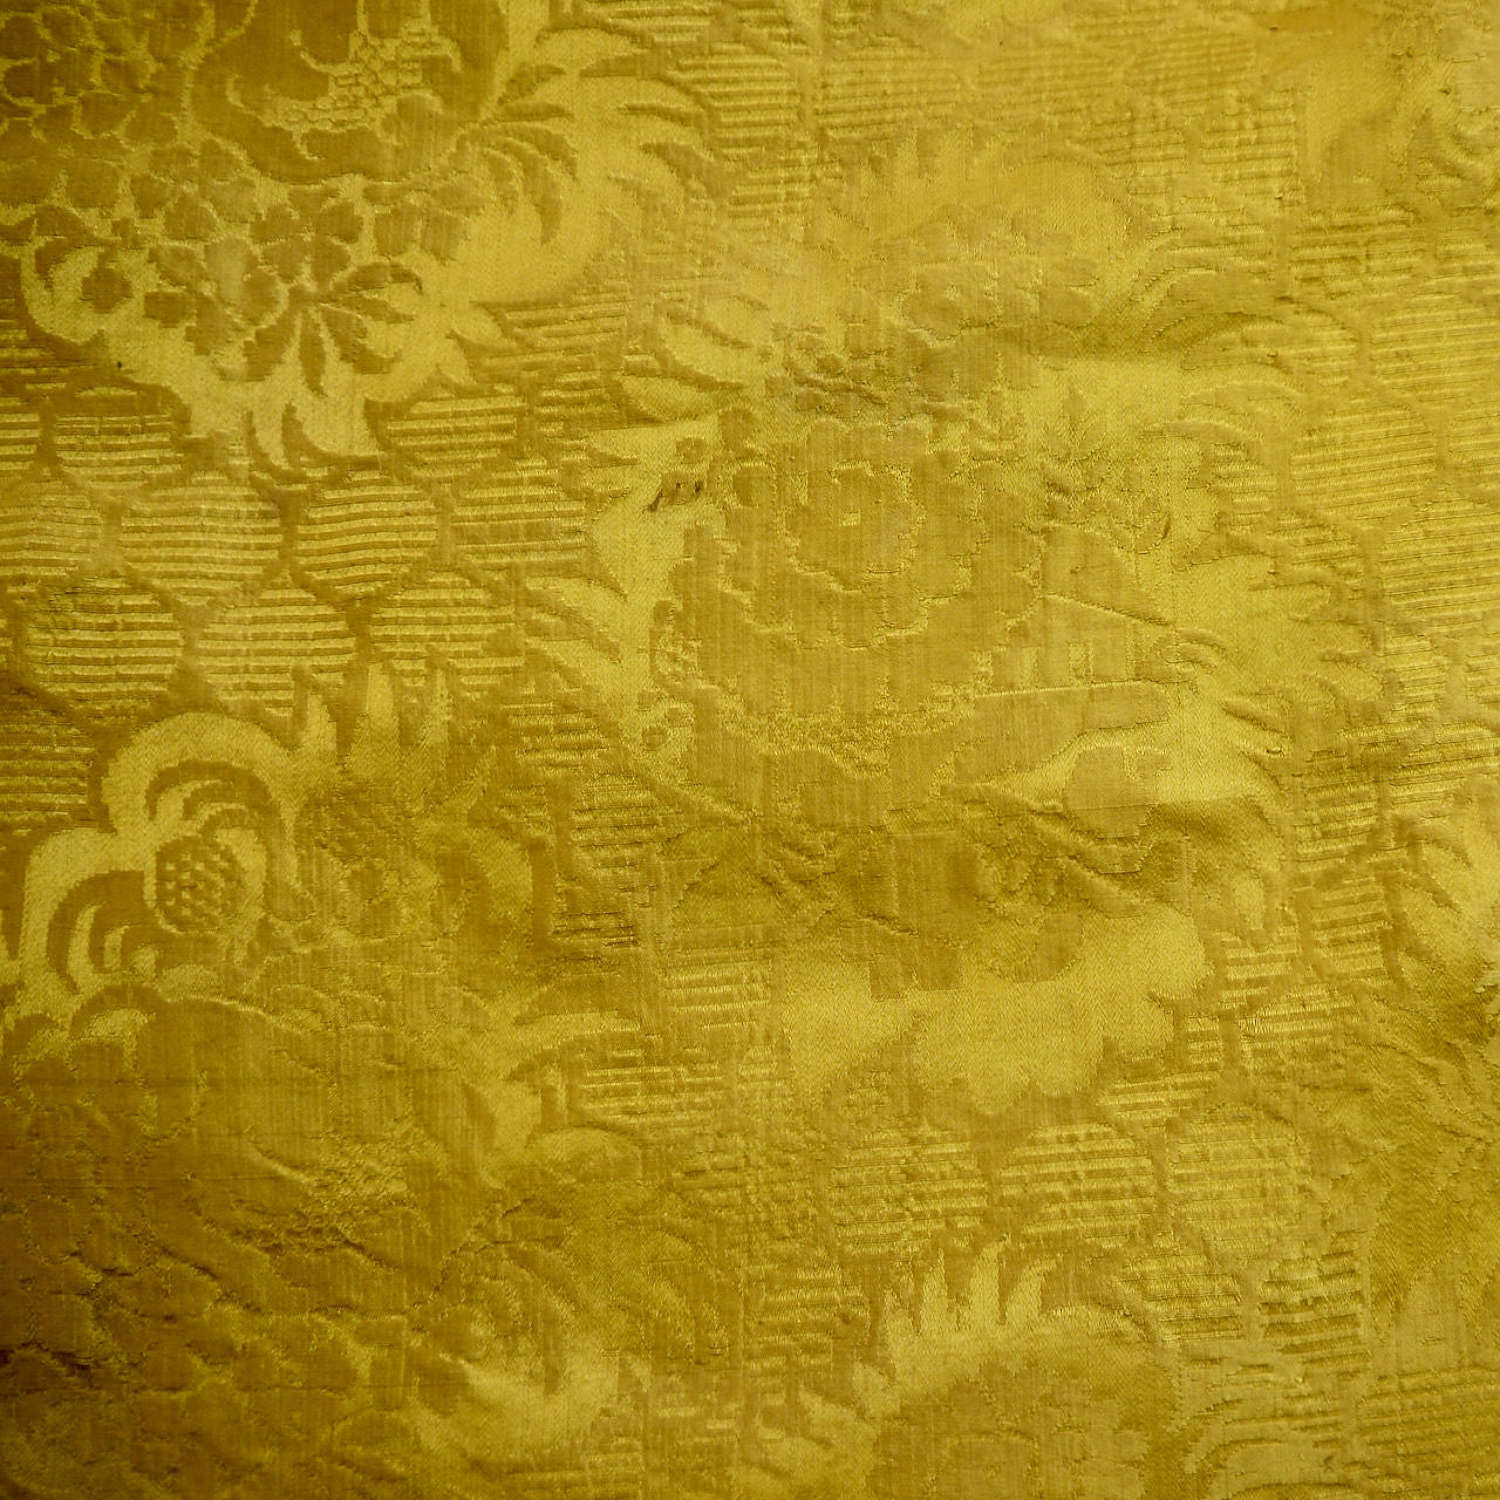 Saffron Yellow Damask Silk French Empire 19thC